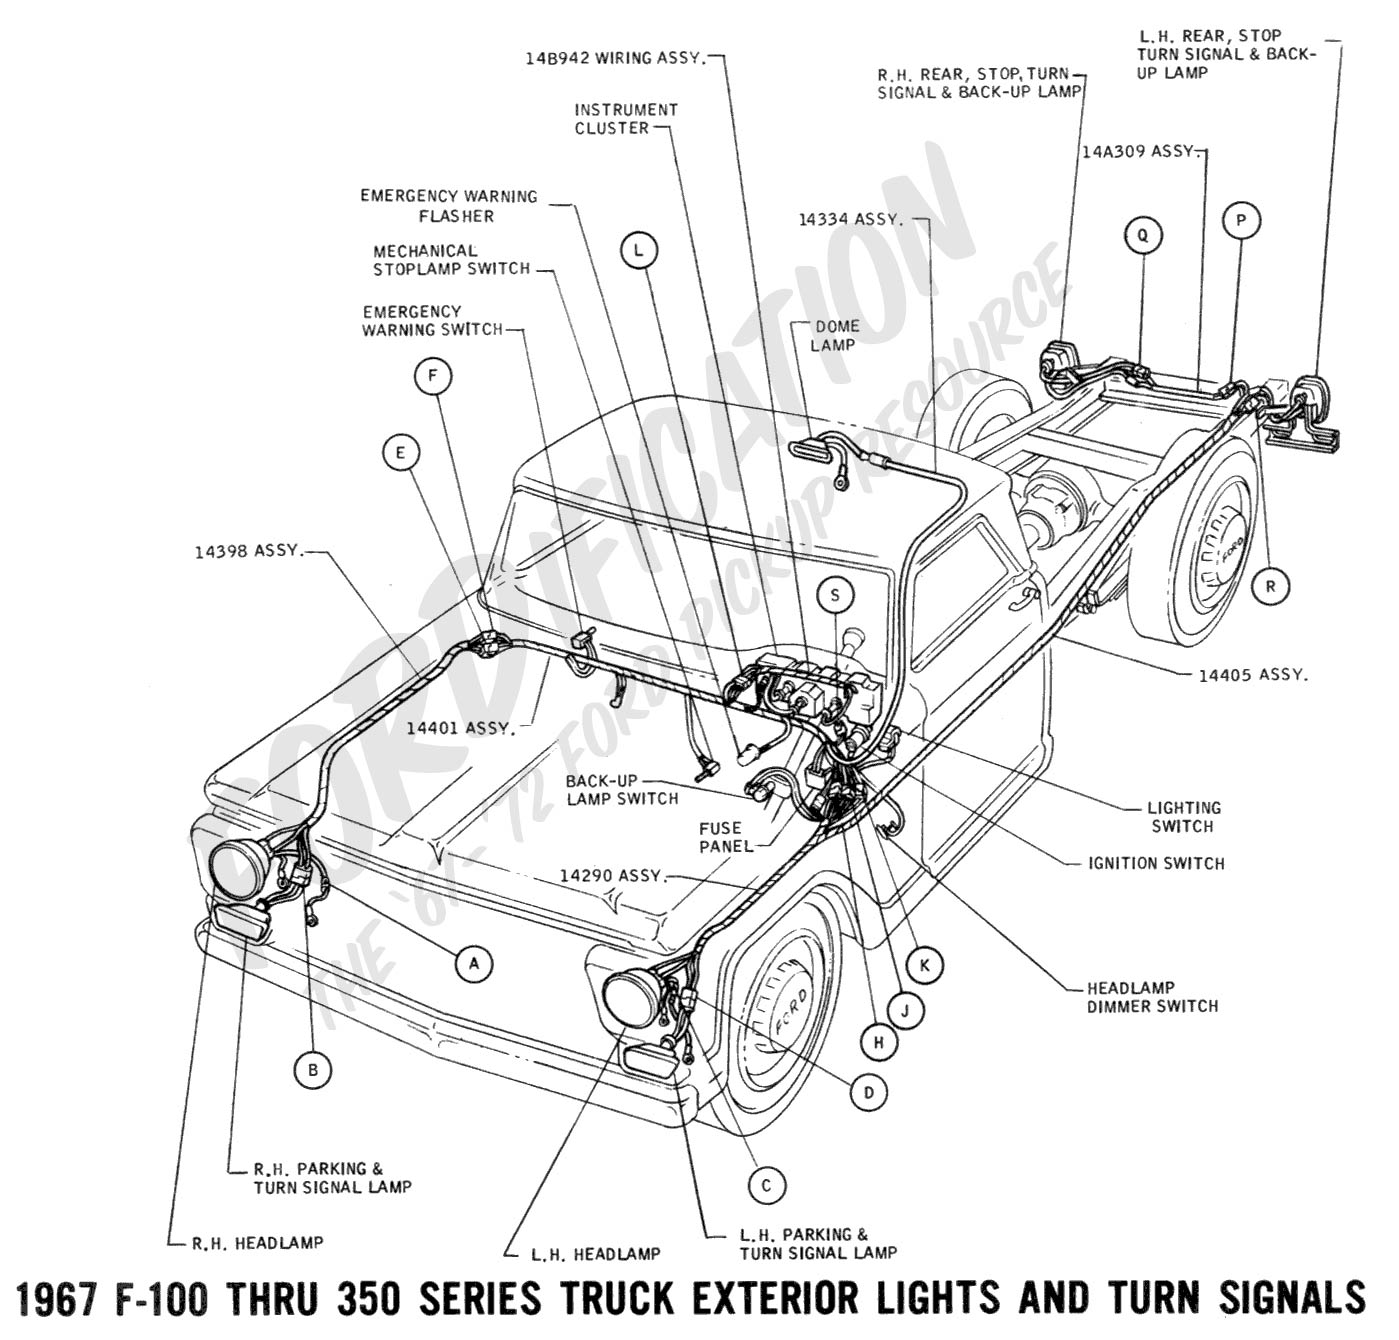 wiring 1967extlights01 ford truck technical drawings and schematics section h wiring 2008 ford ranger wiring schematic at arjmand.co